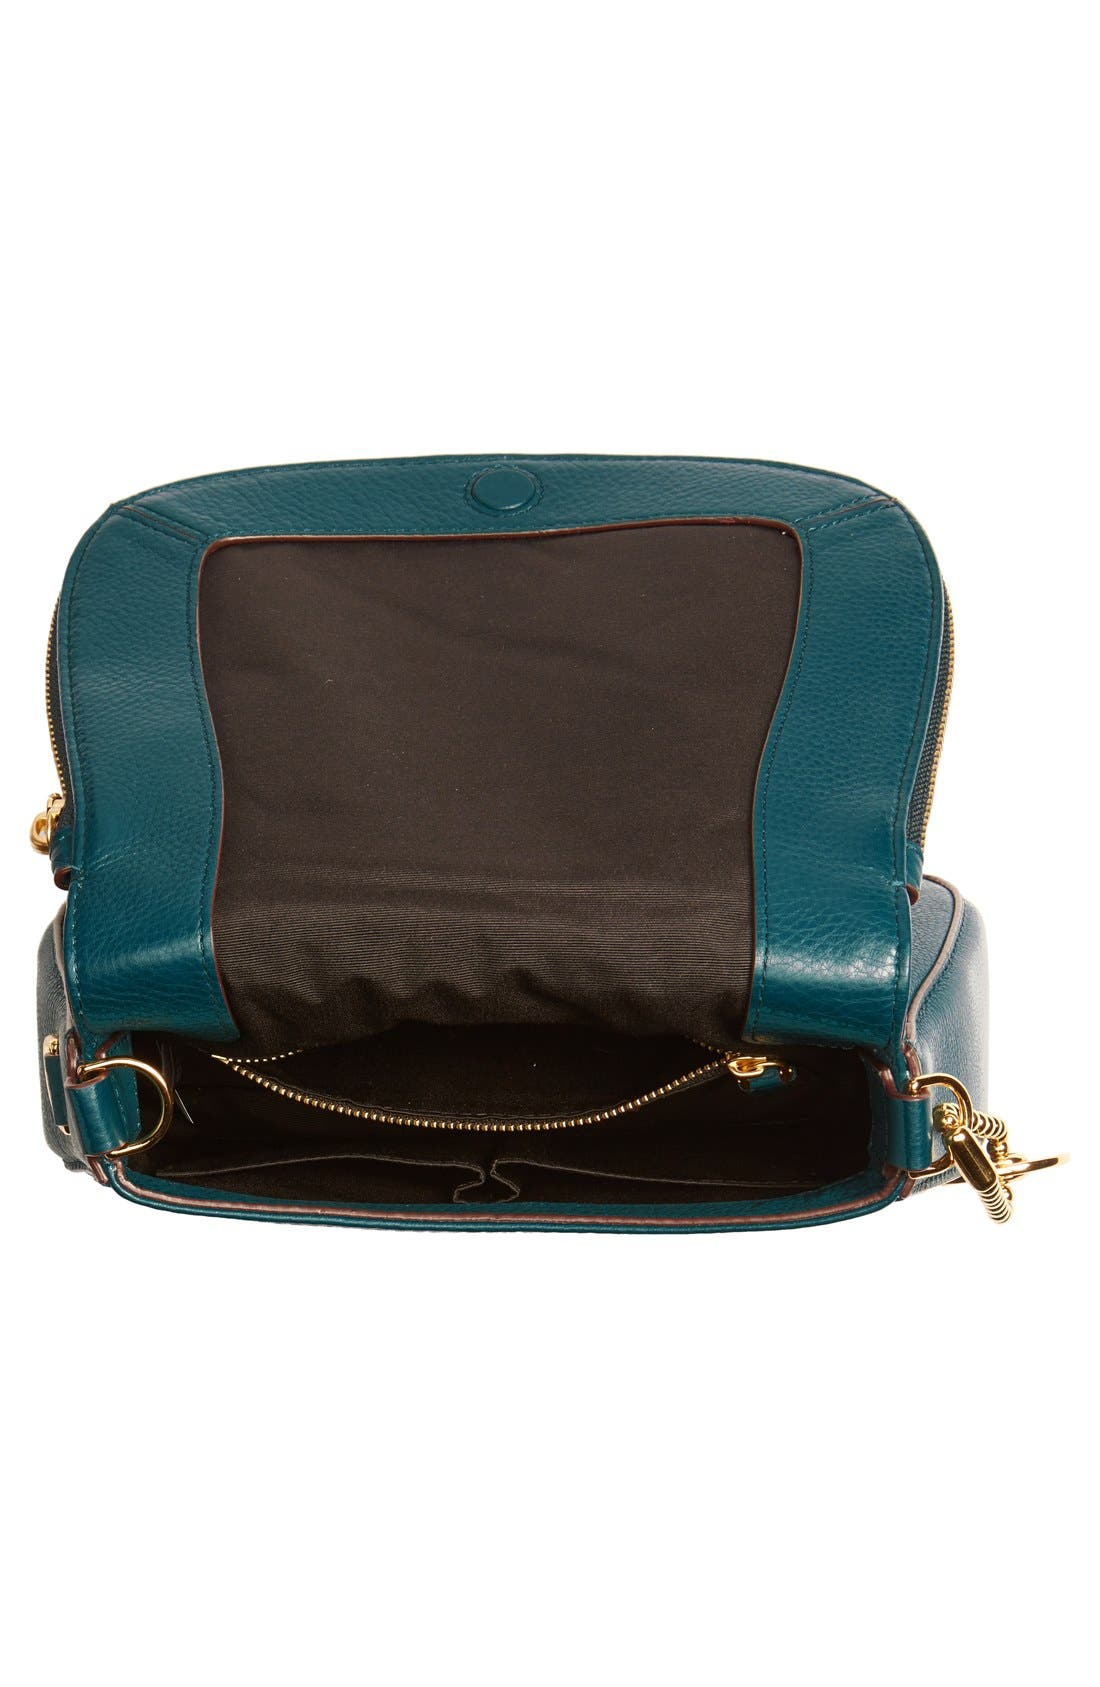 Small Recruit Nomad Pebbled Leather Crossbody Bag,                             Alternate thumbnail 51, color,